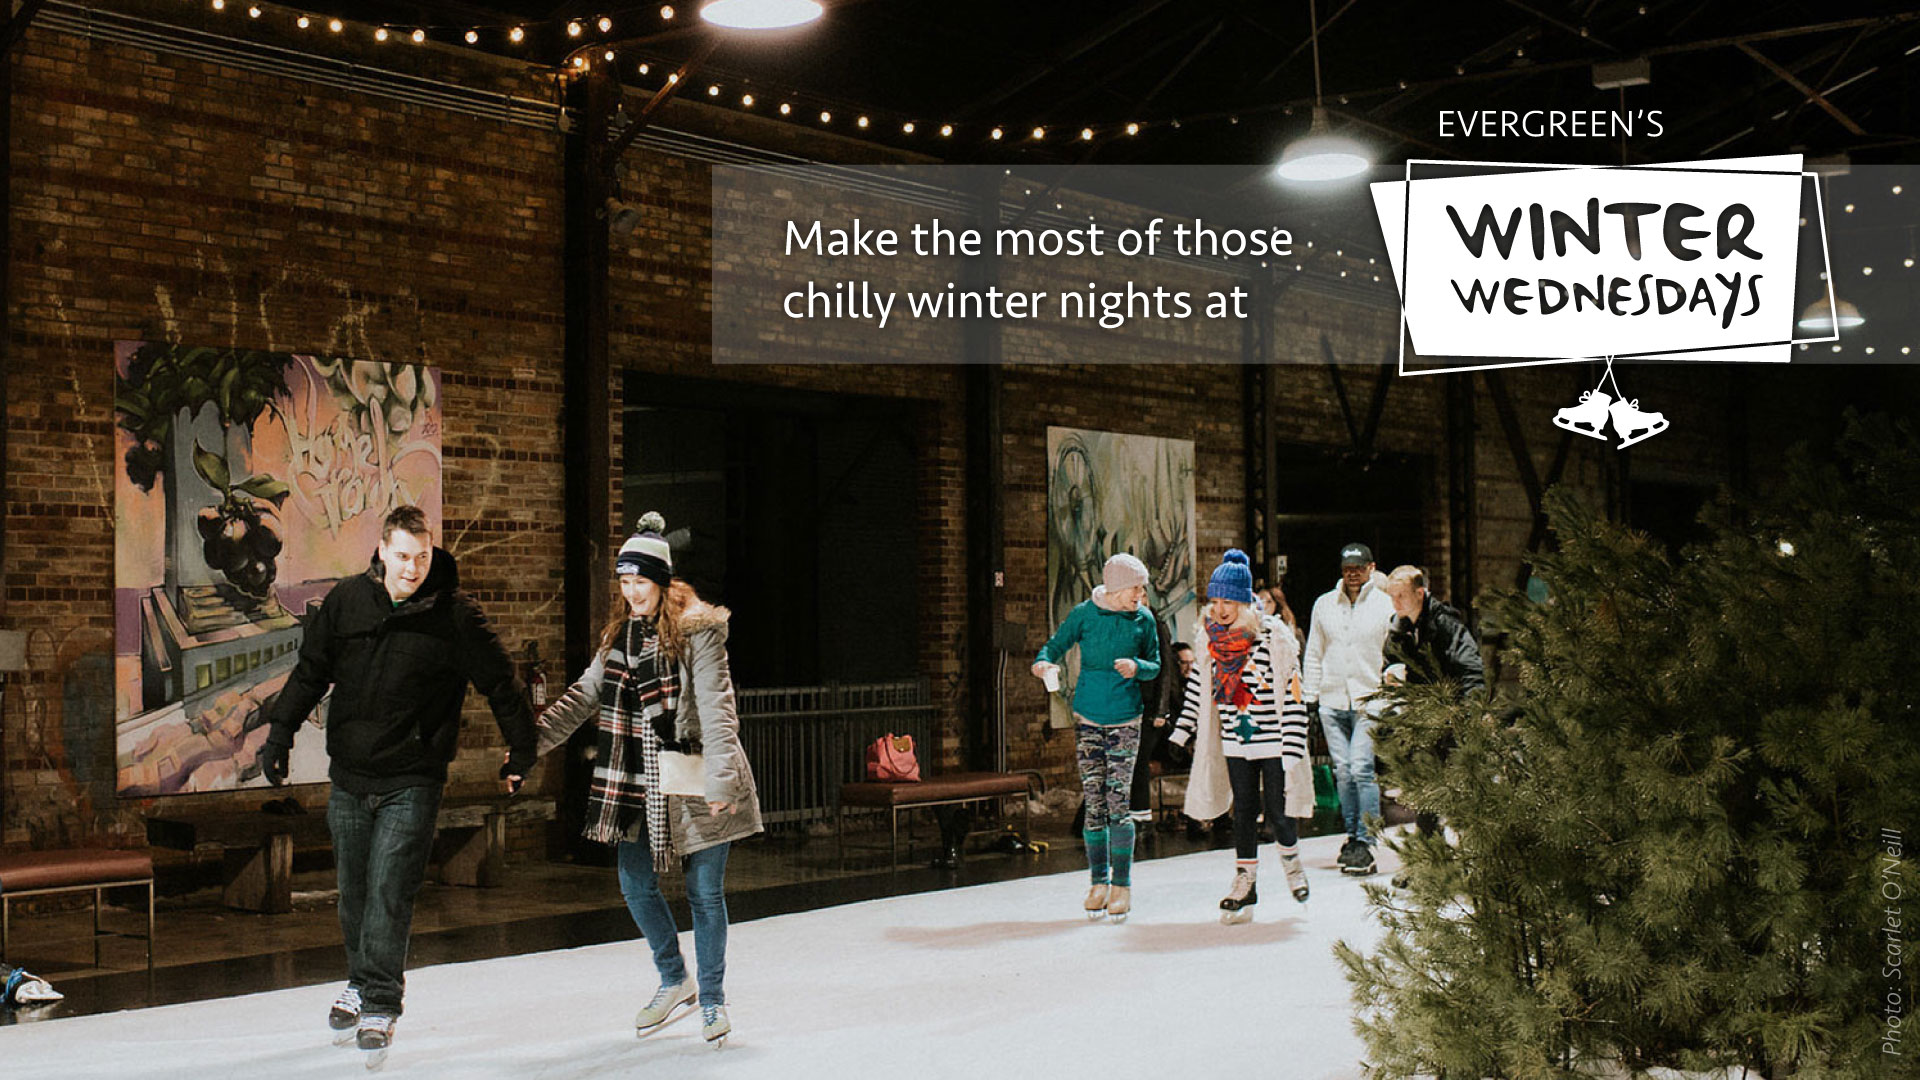 Make the most of those chilly winter nights at Evergreenès Winter Wednesdays!